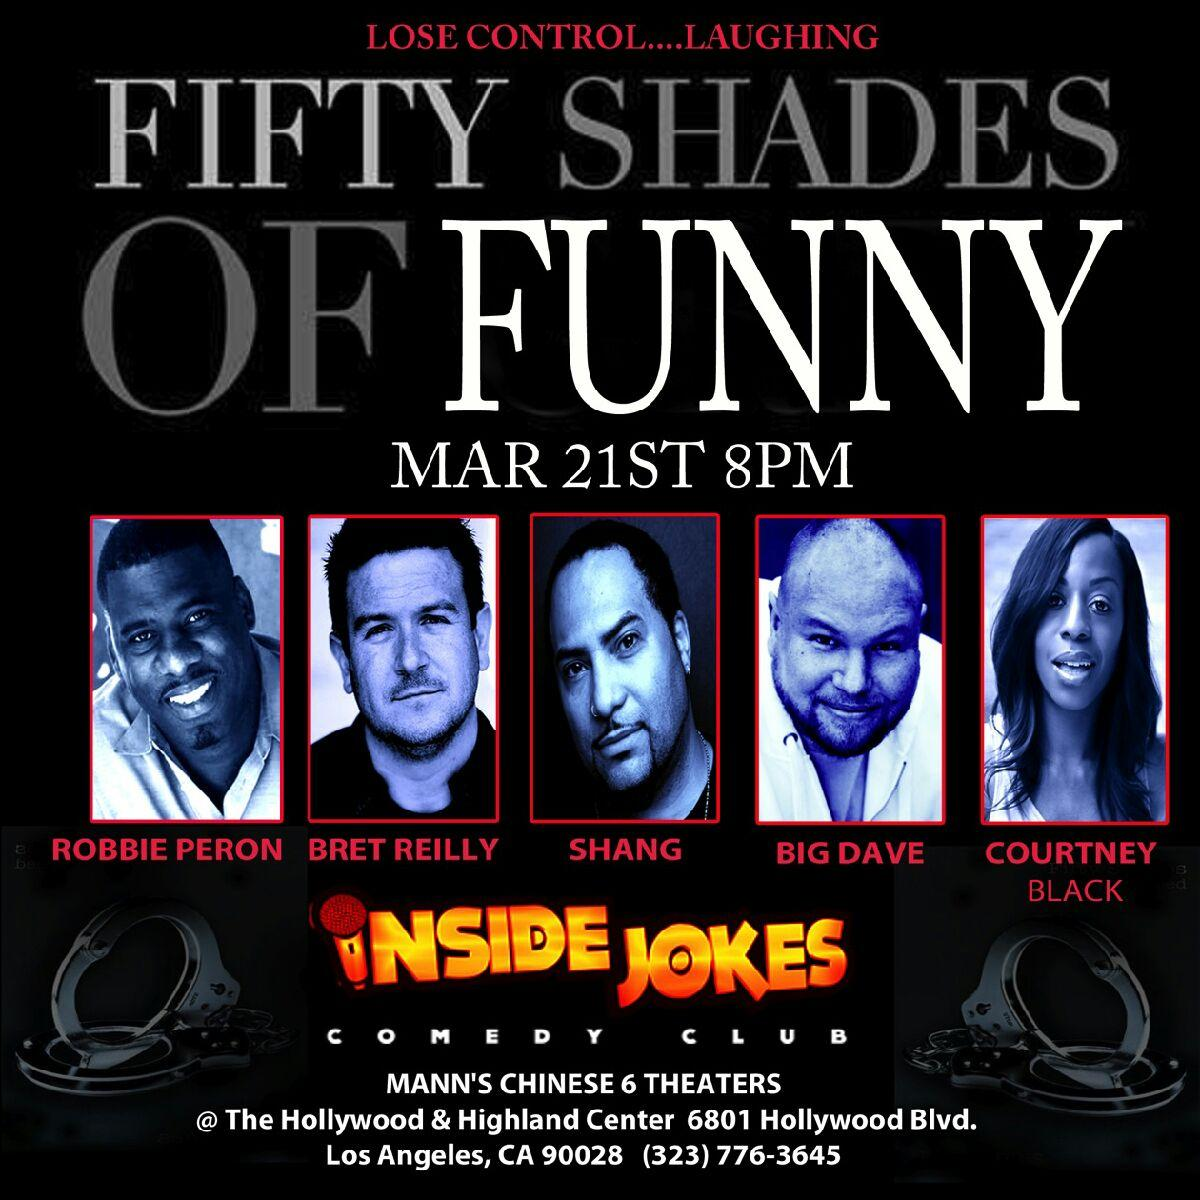 50 Shades of Funny show